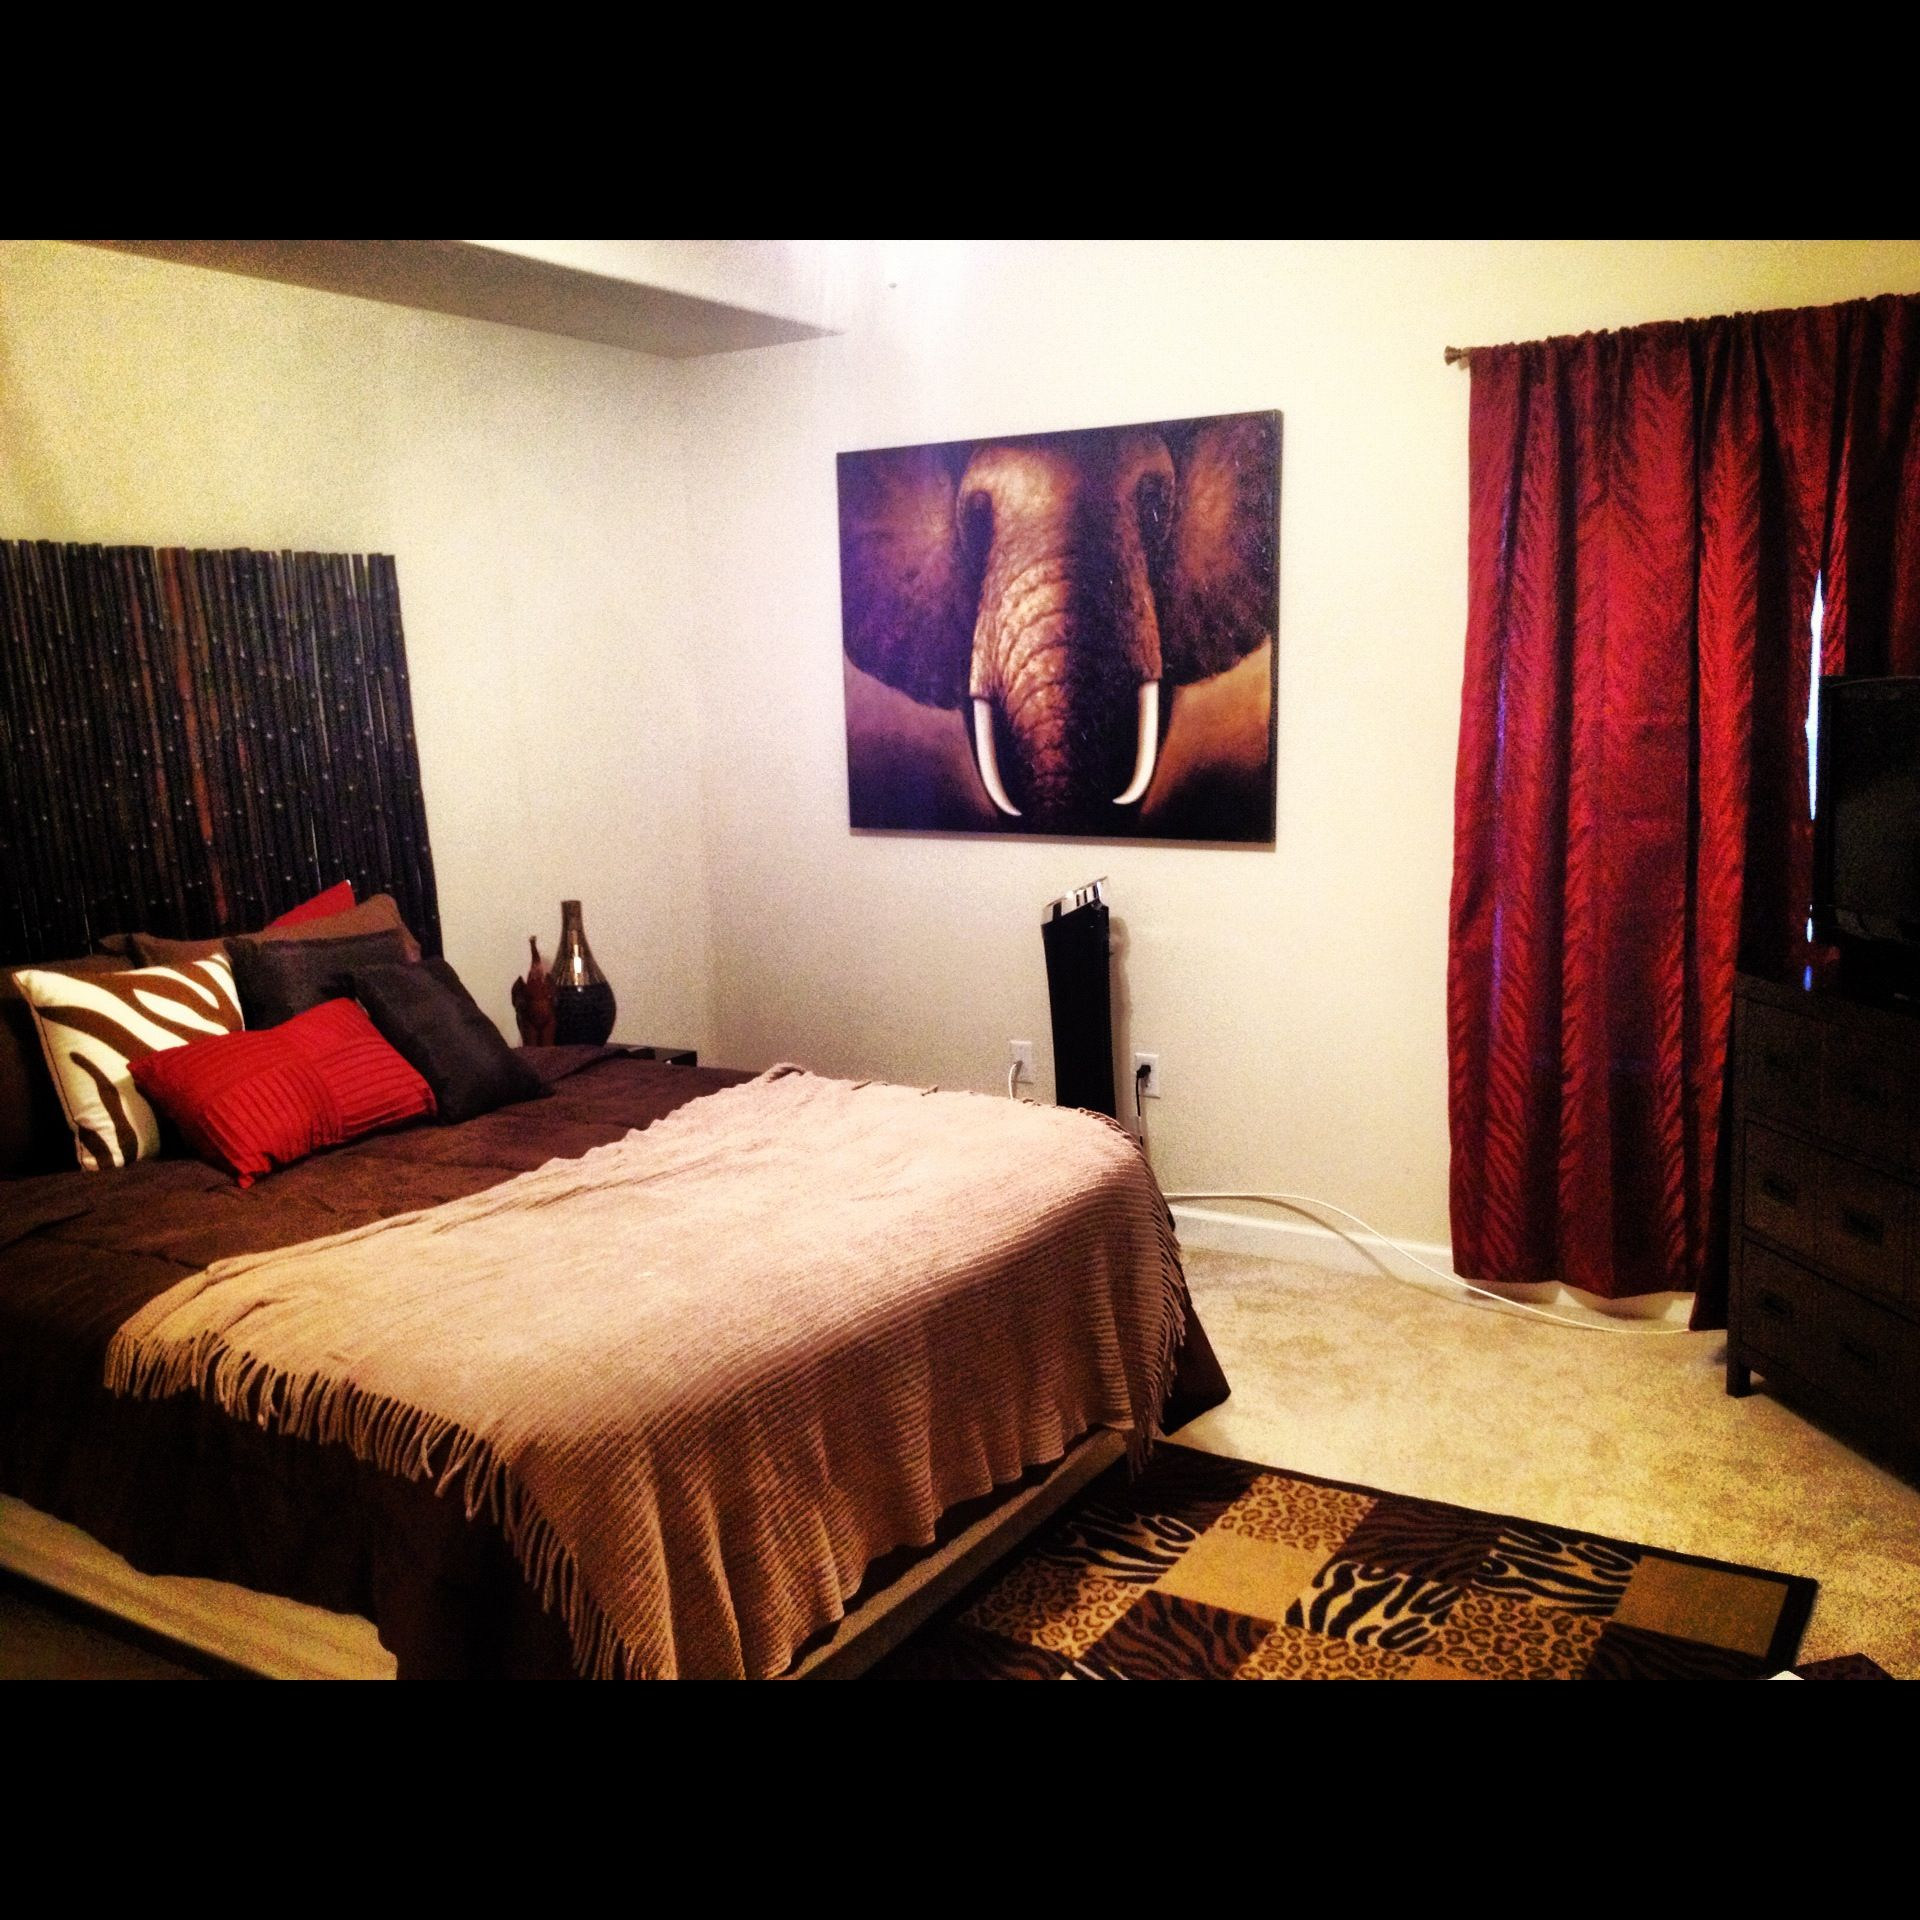 Safari #safari #bedroom #theme #red #brown #gold #beige #bamboo